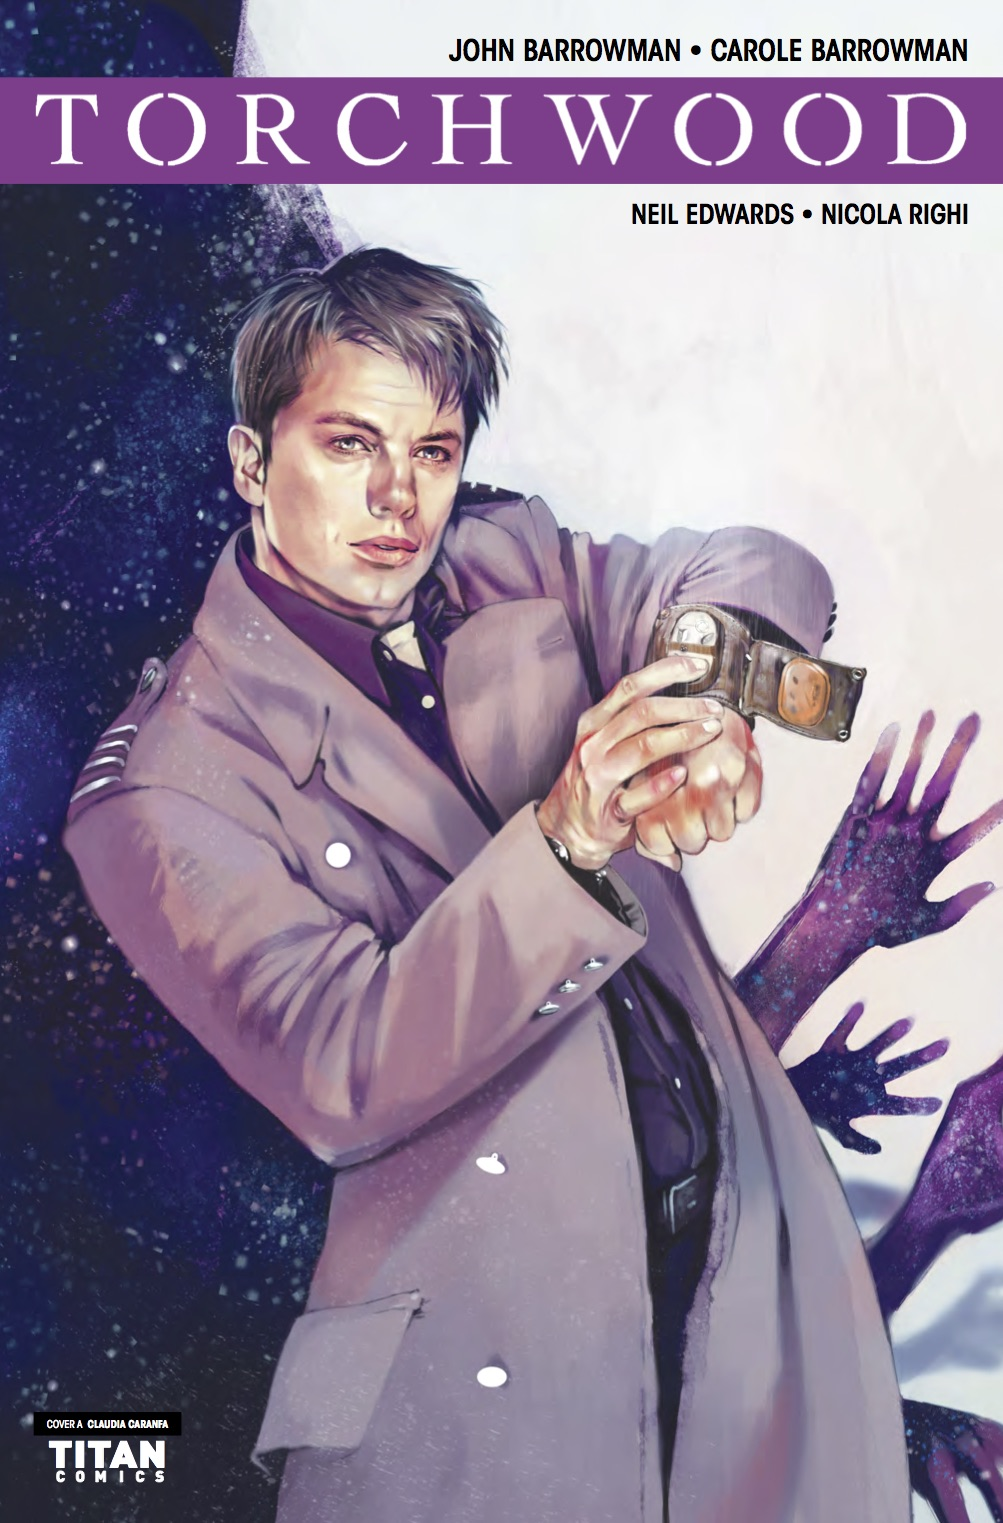 Torchwood Station Zero #4 Cover A (Credit: Titan / Claudia Caranfa)